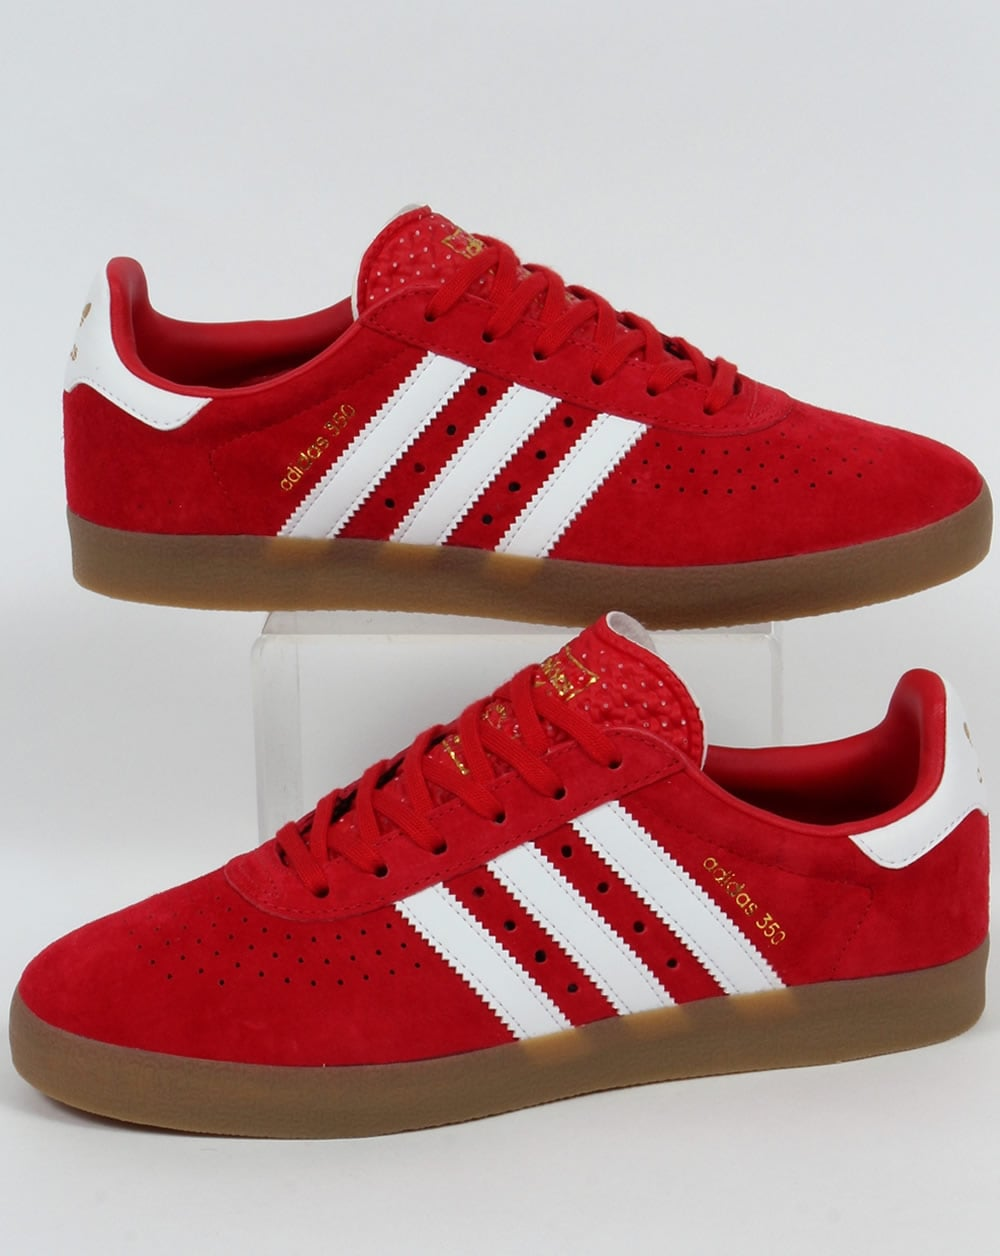 Adidas Shoes 350